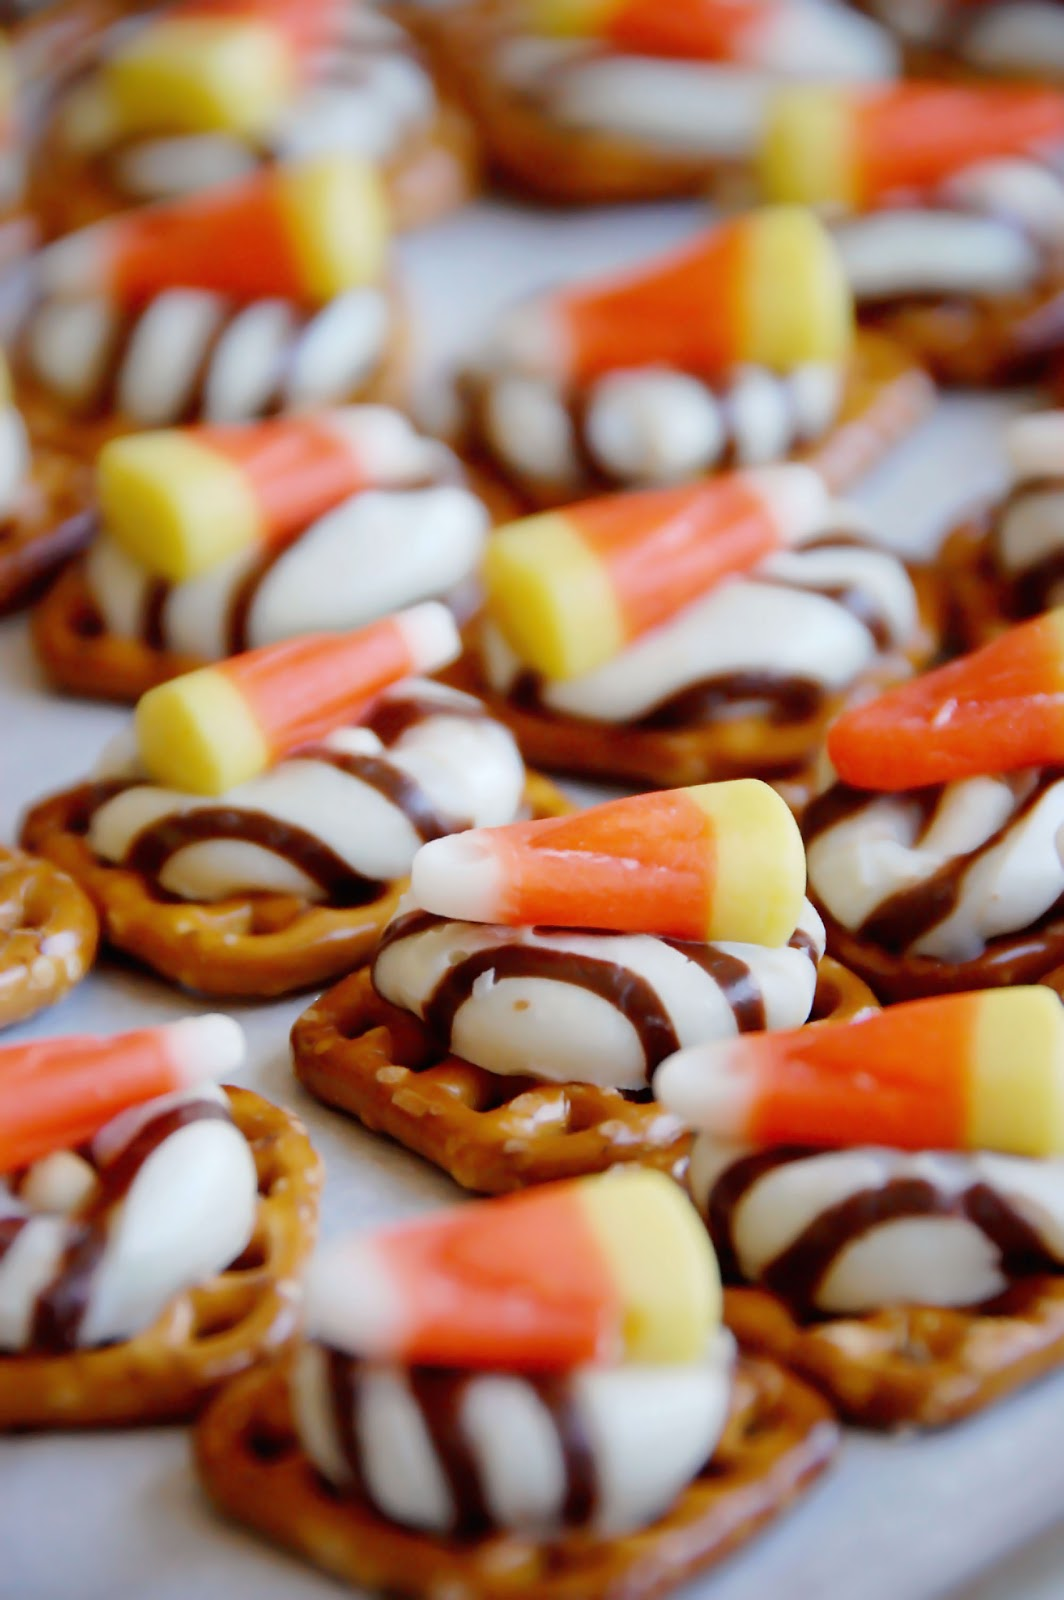 Barefoot and Baking: Sweet and Salty Halloween Treats